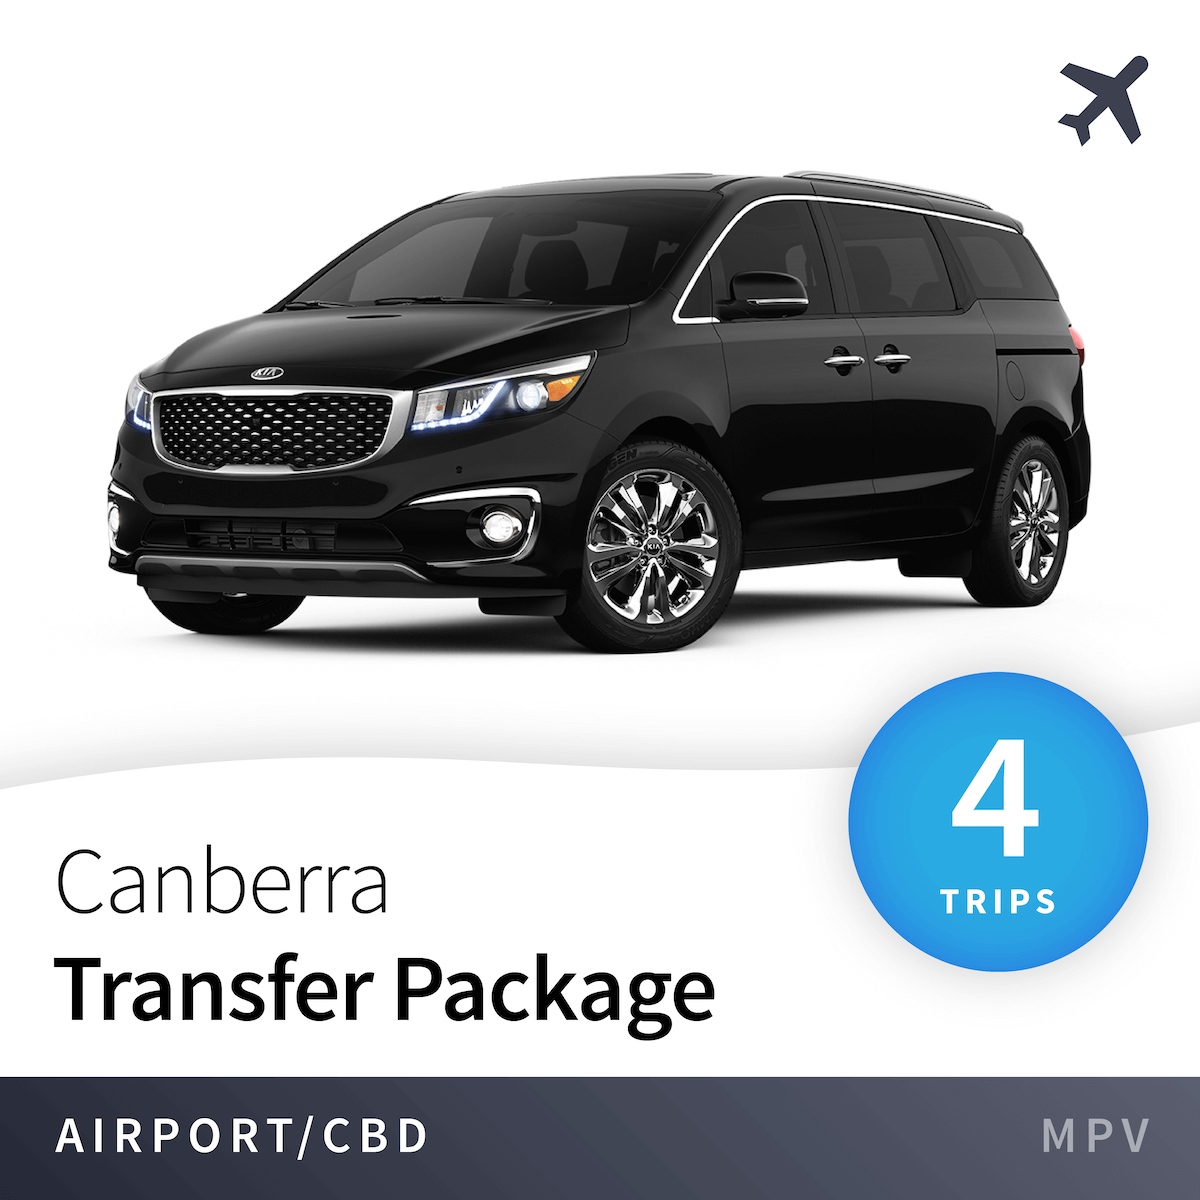 Canberra Airport Transfer Package - MPV (4 Trips) 5